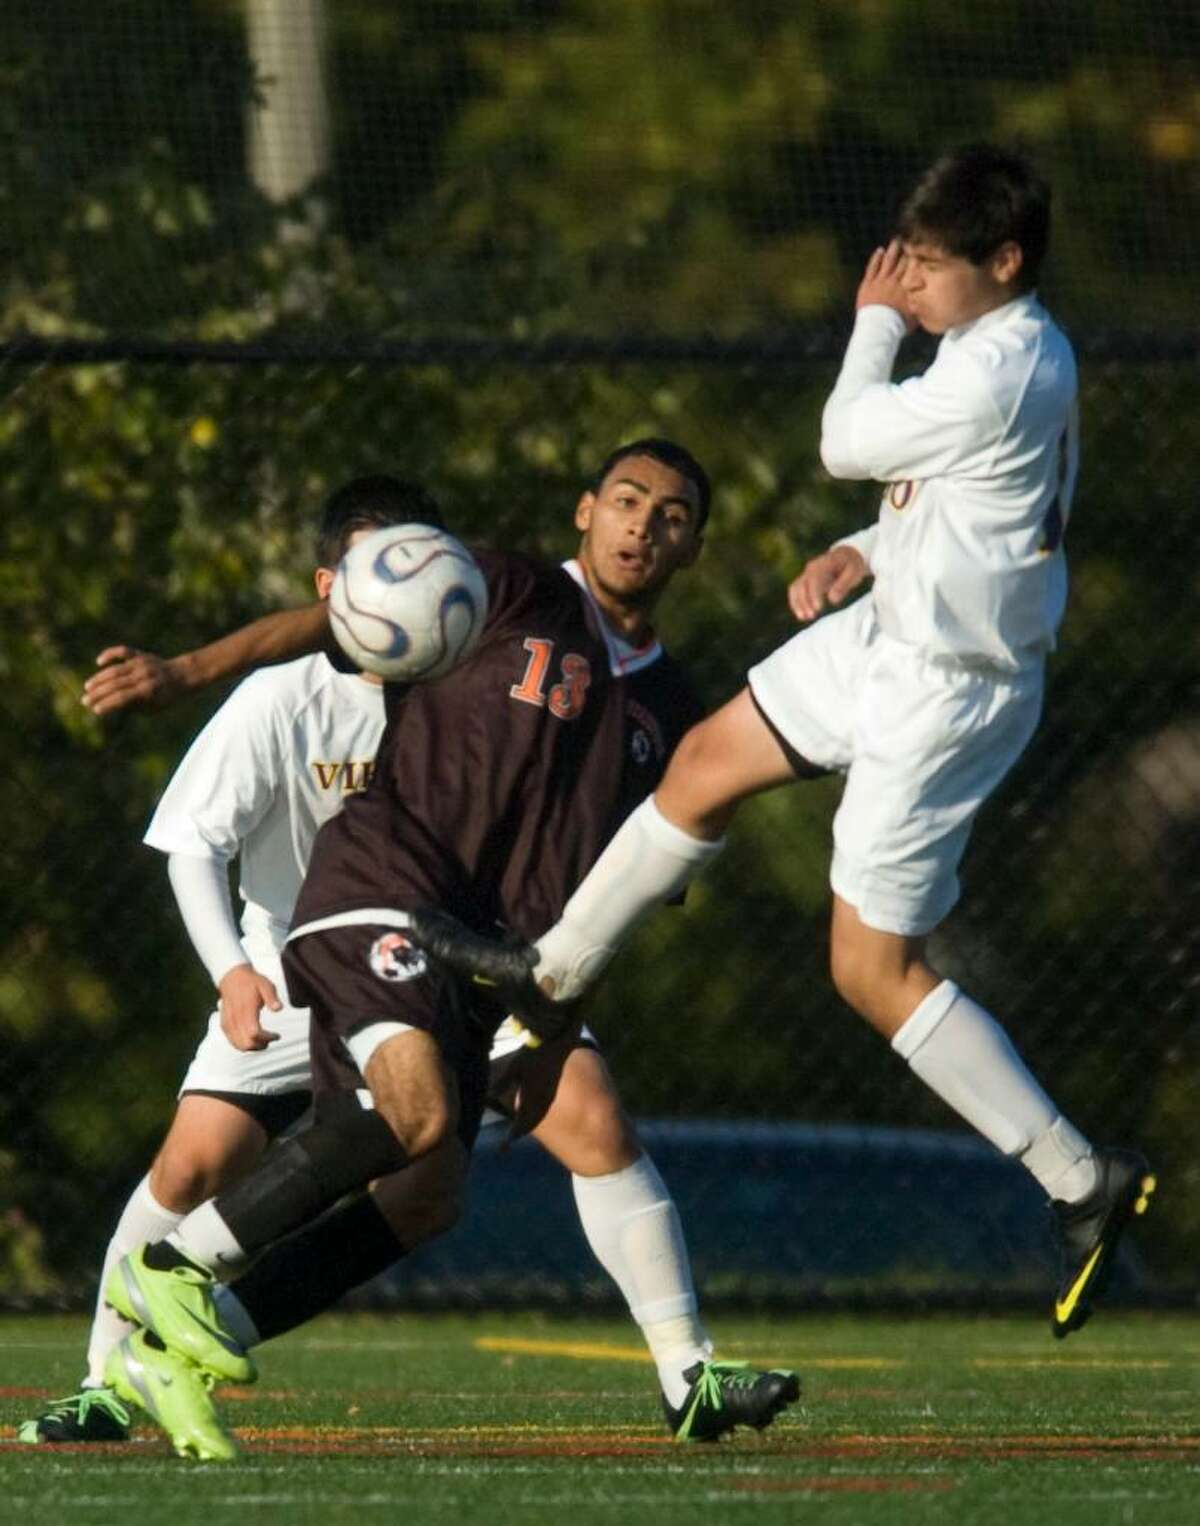 Stamford's Carlos Calix, left, and Westhill's Sebastian Rozo, right, during an FCIAC soccer game at Westhill High School in Stamford on Tuesday, Oct. 20, 2009.